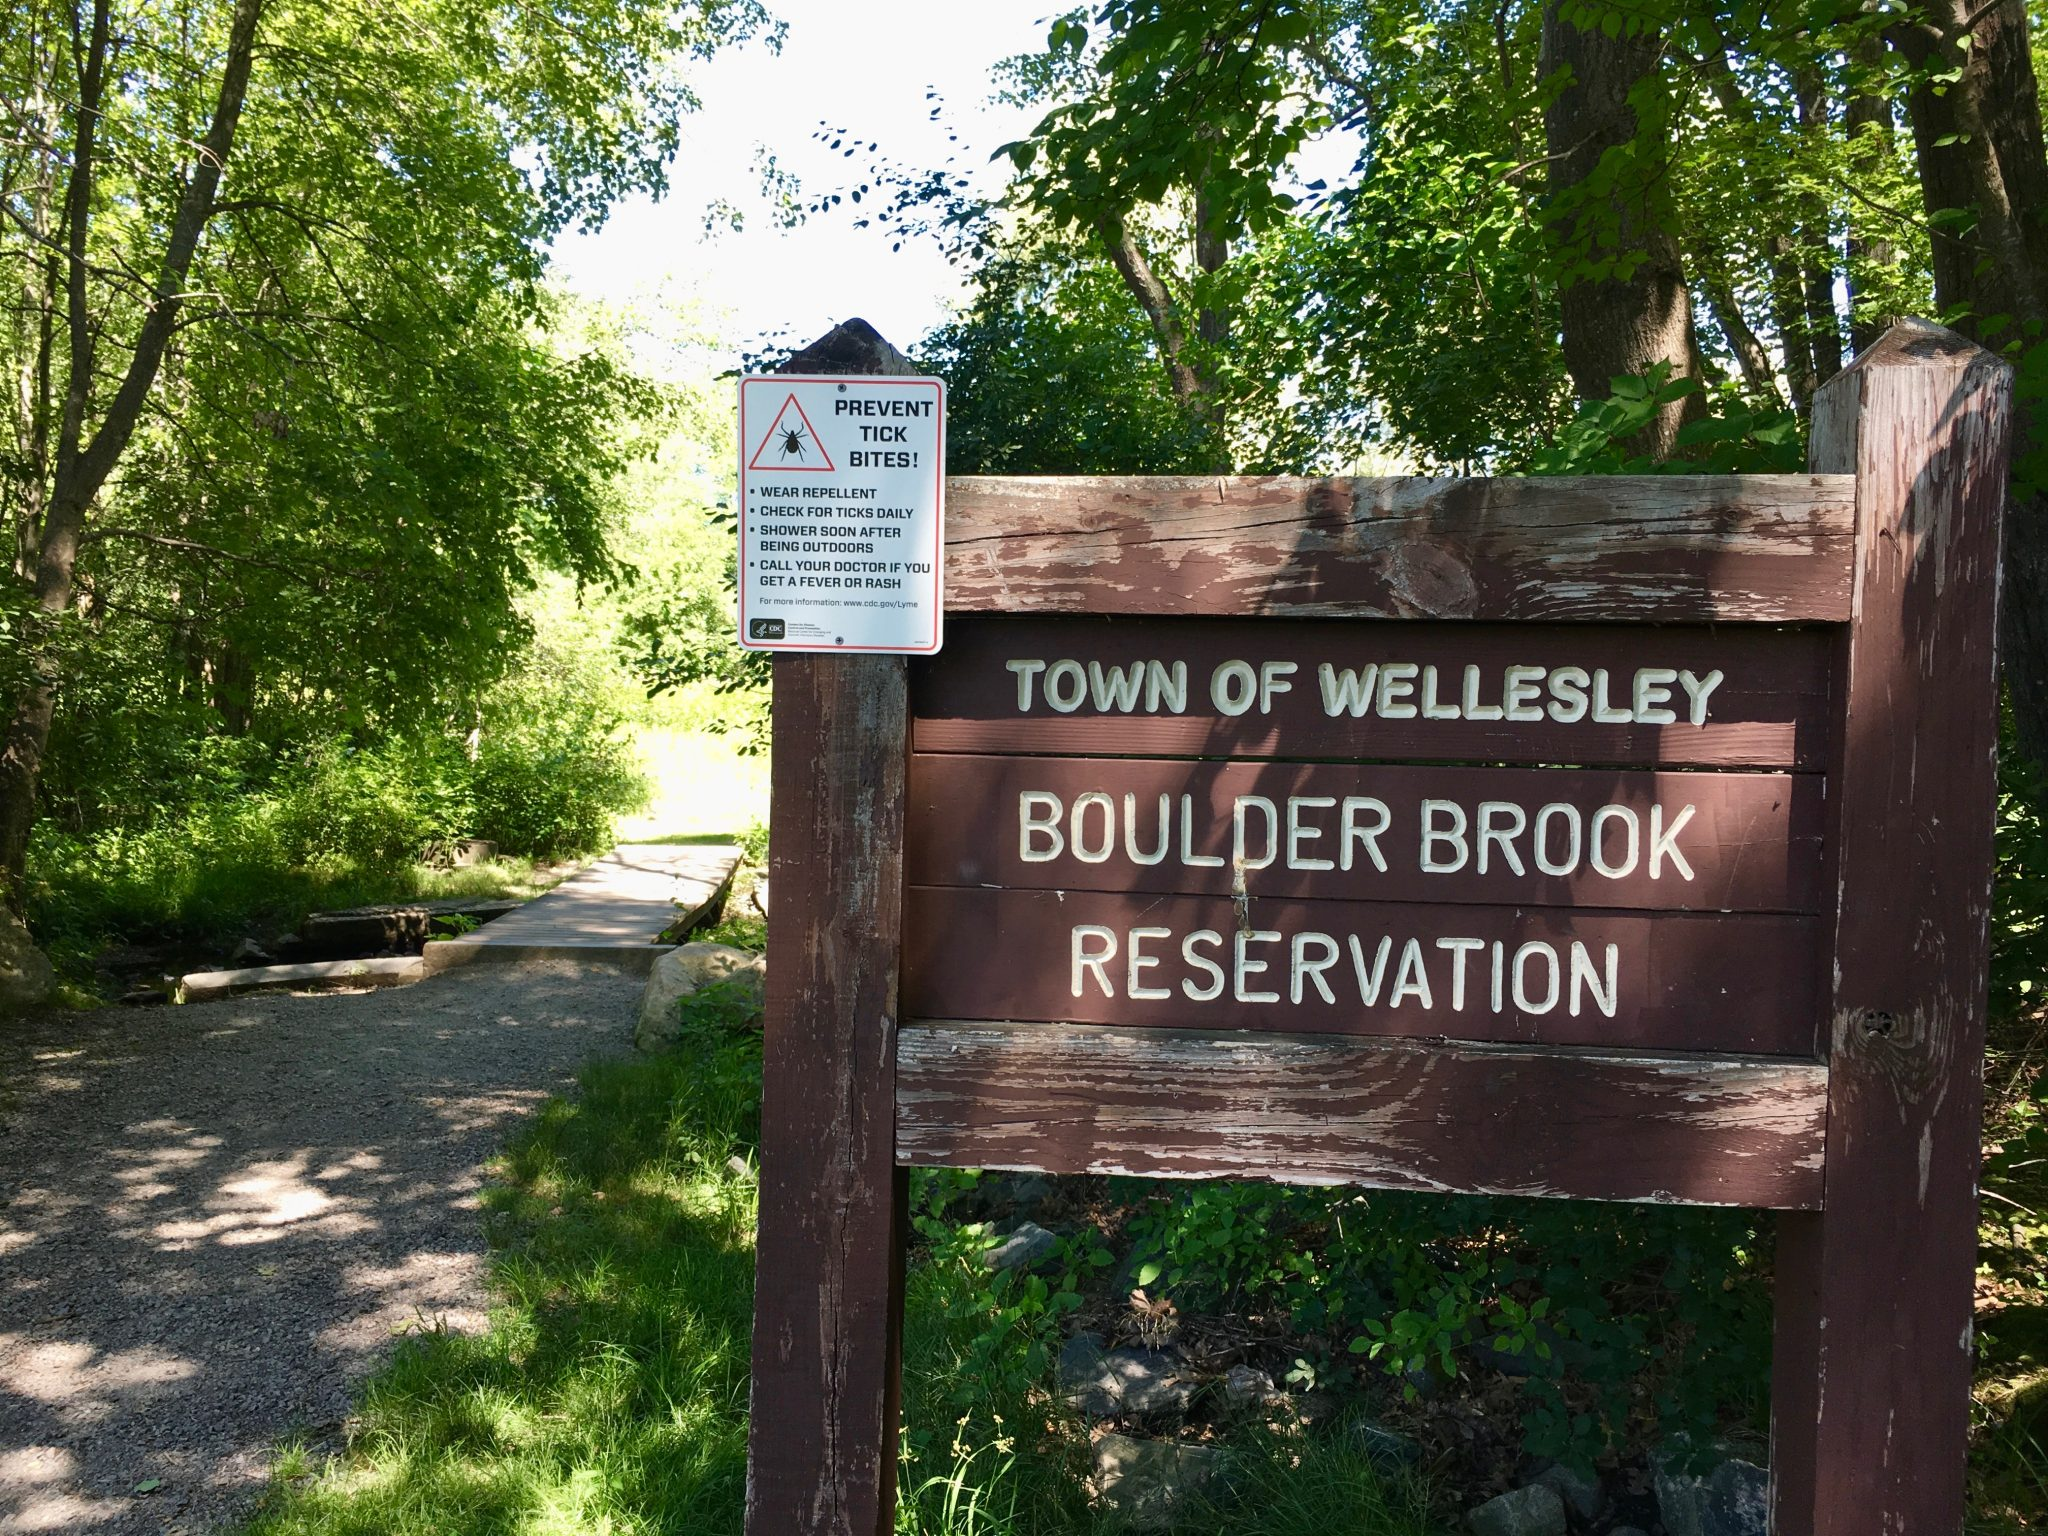 Boulder Brook Reservation, Wellesley